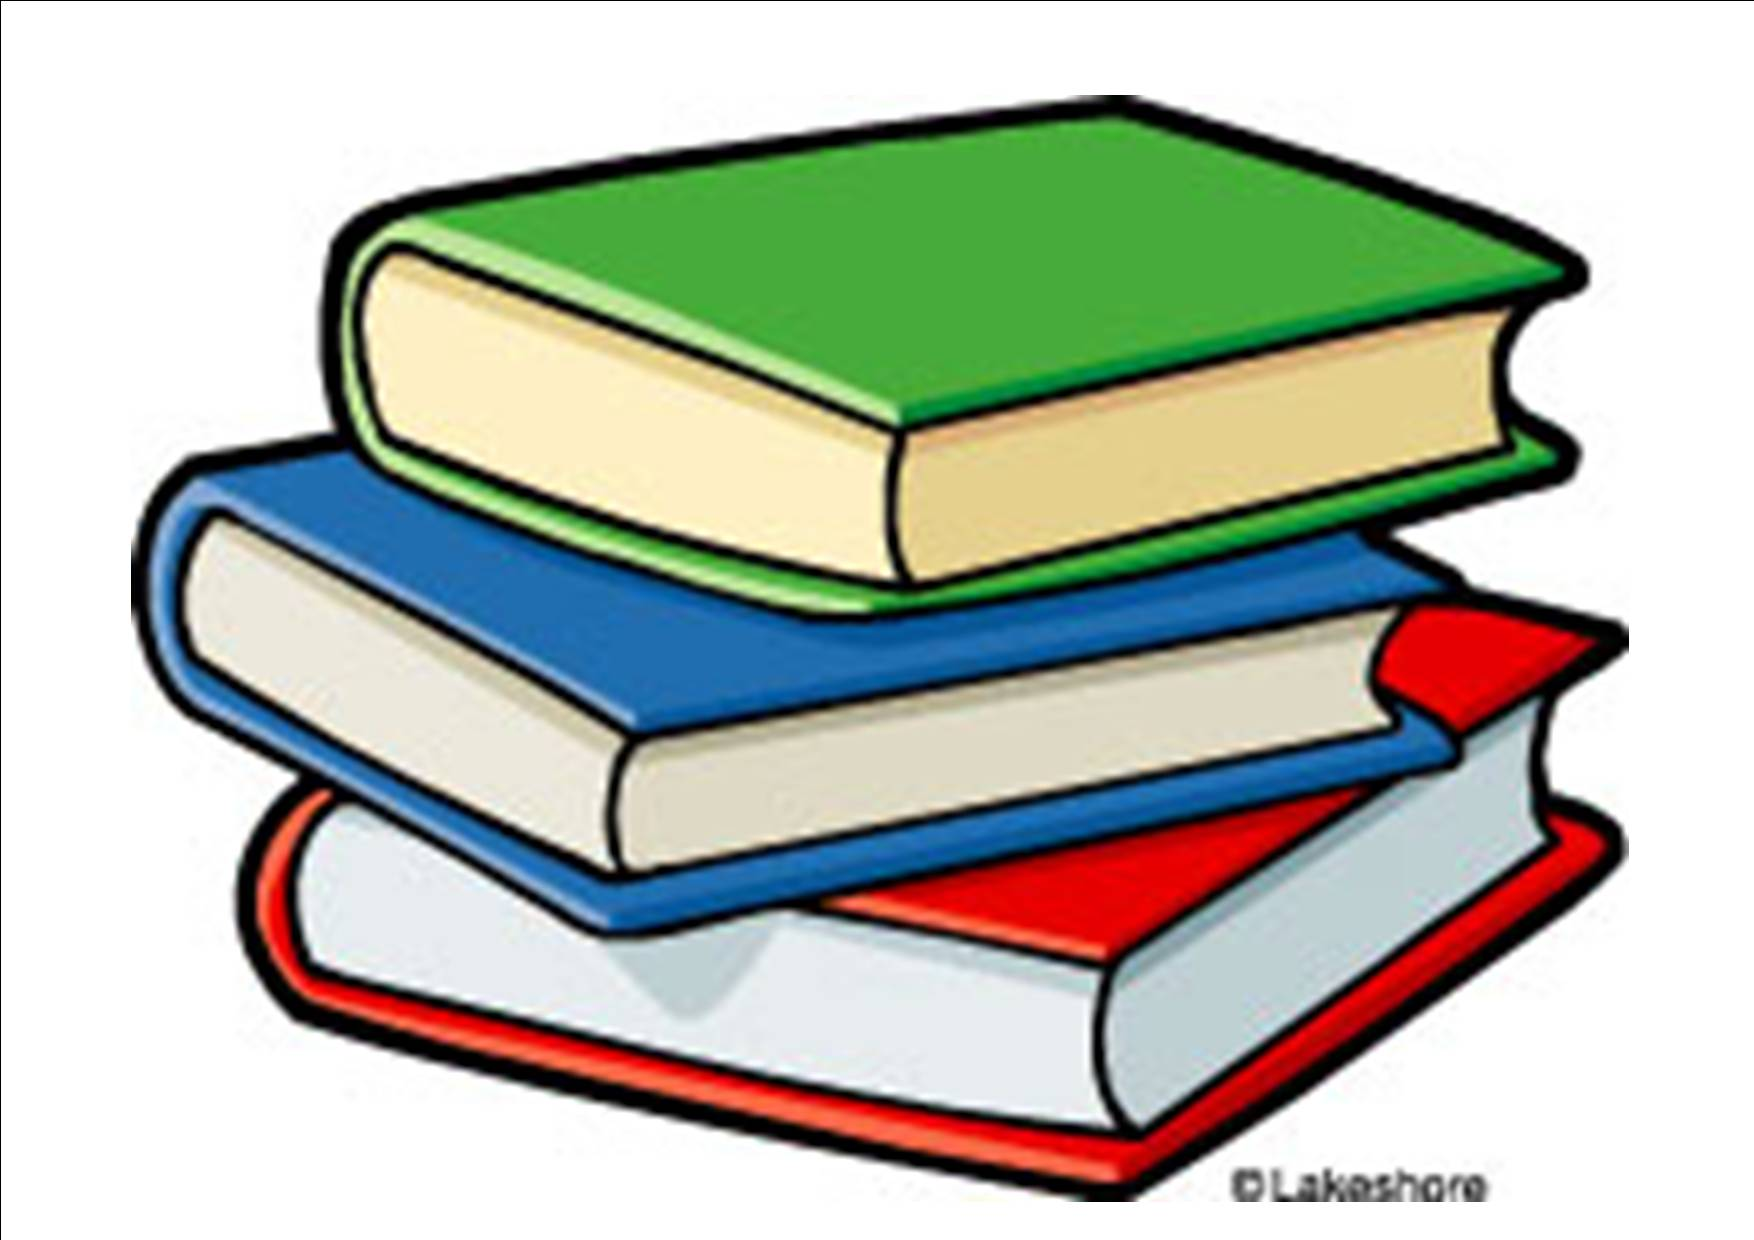 hight resolution of books clipart